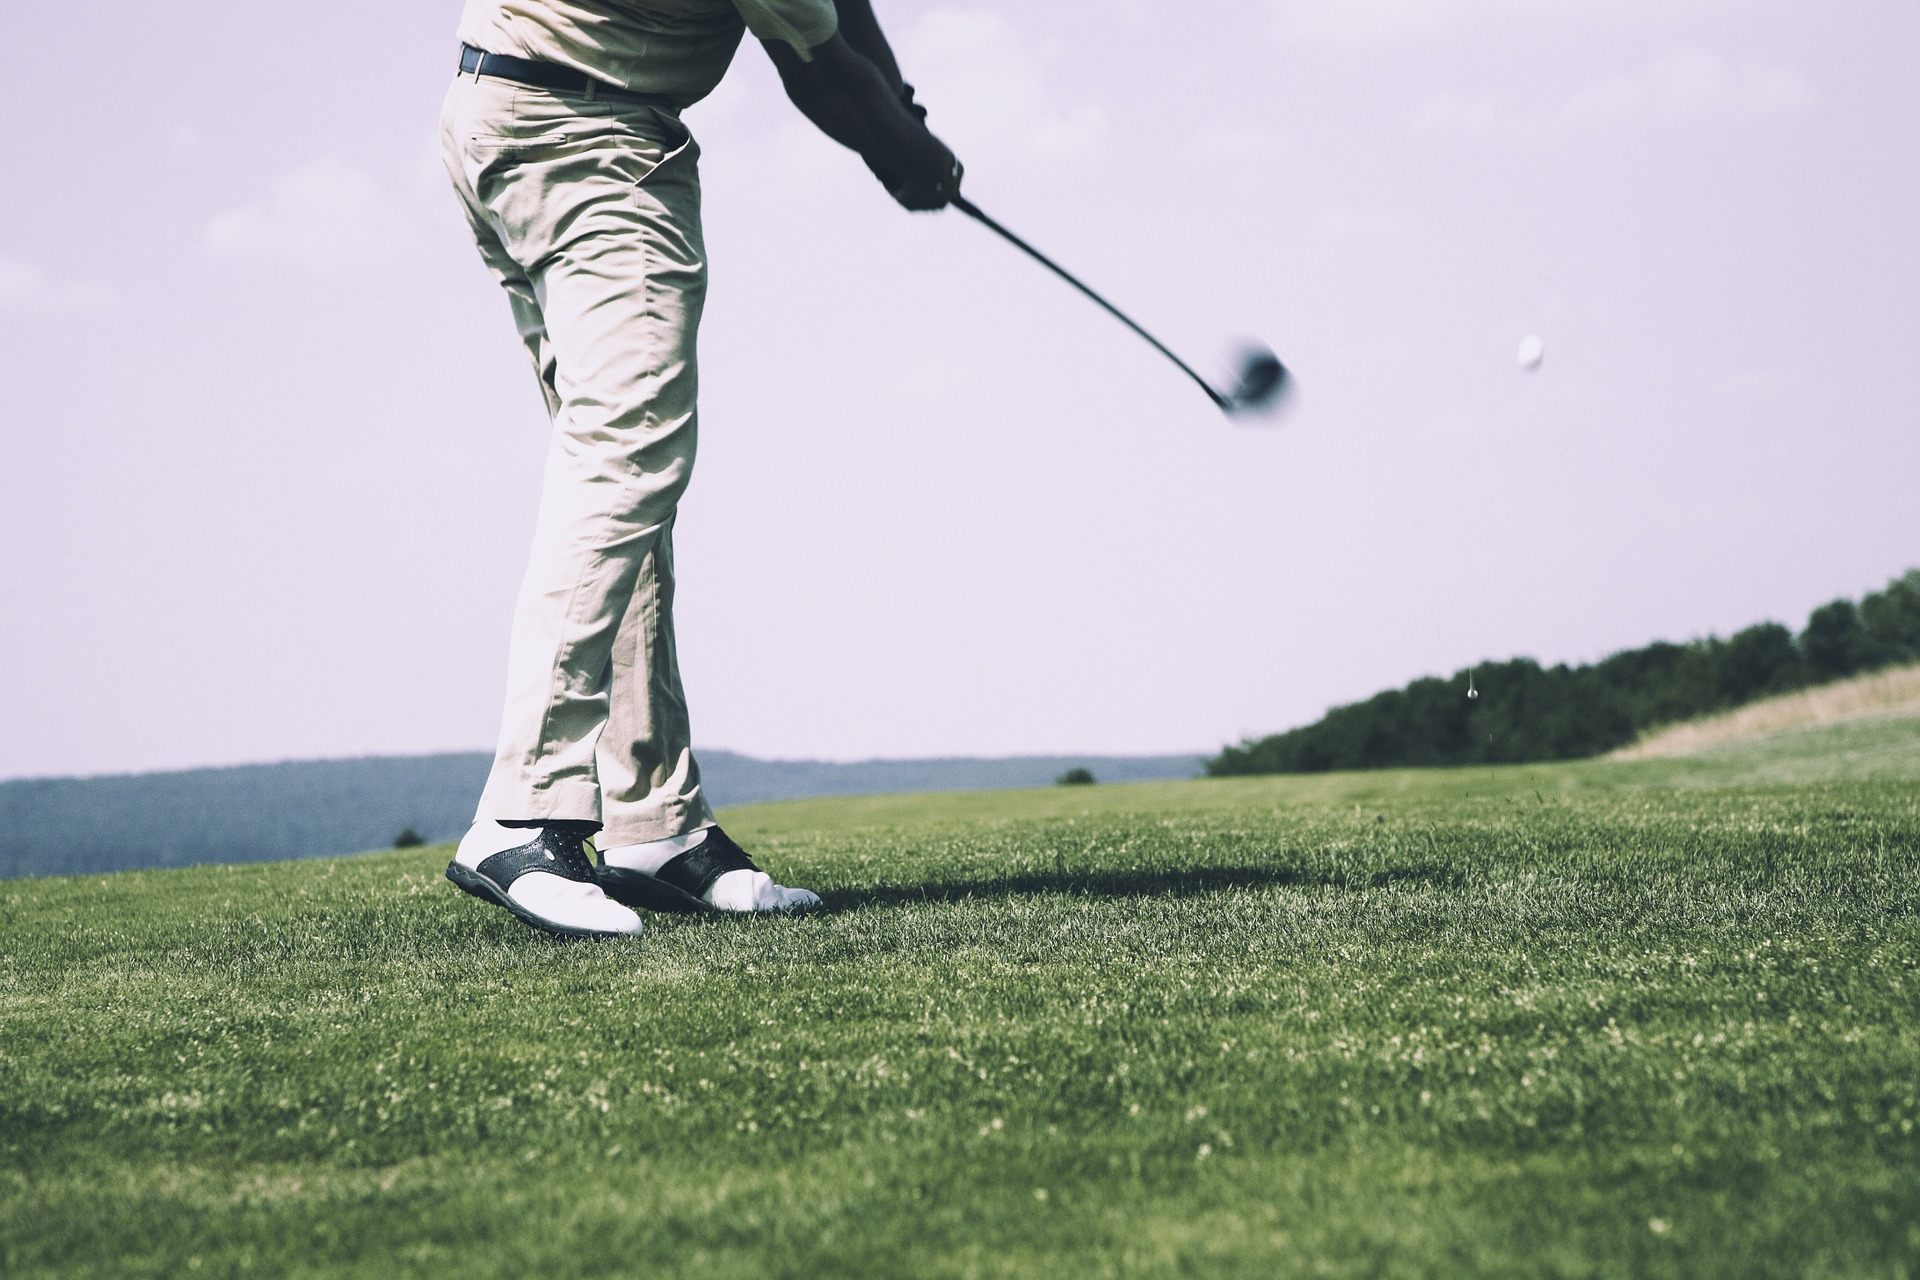 our Rockland County chiropractor in pearl river offers a number of chiropractic services including golf fitness evaluations